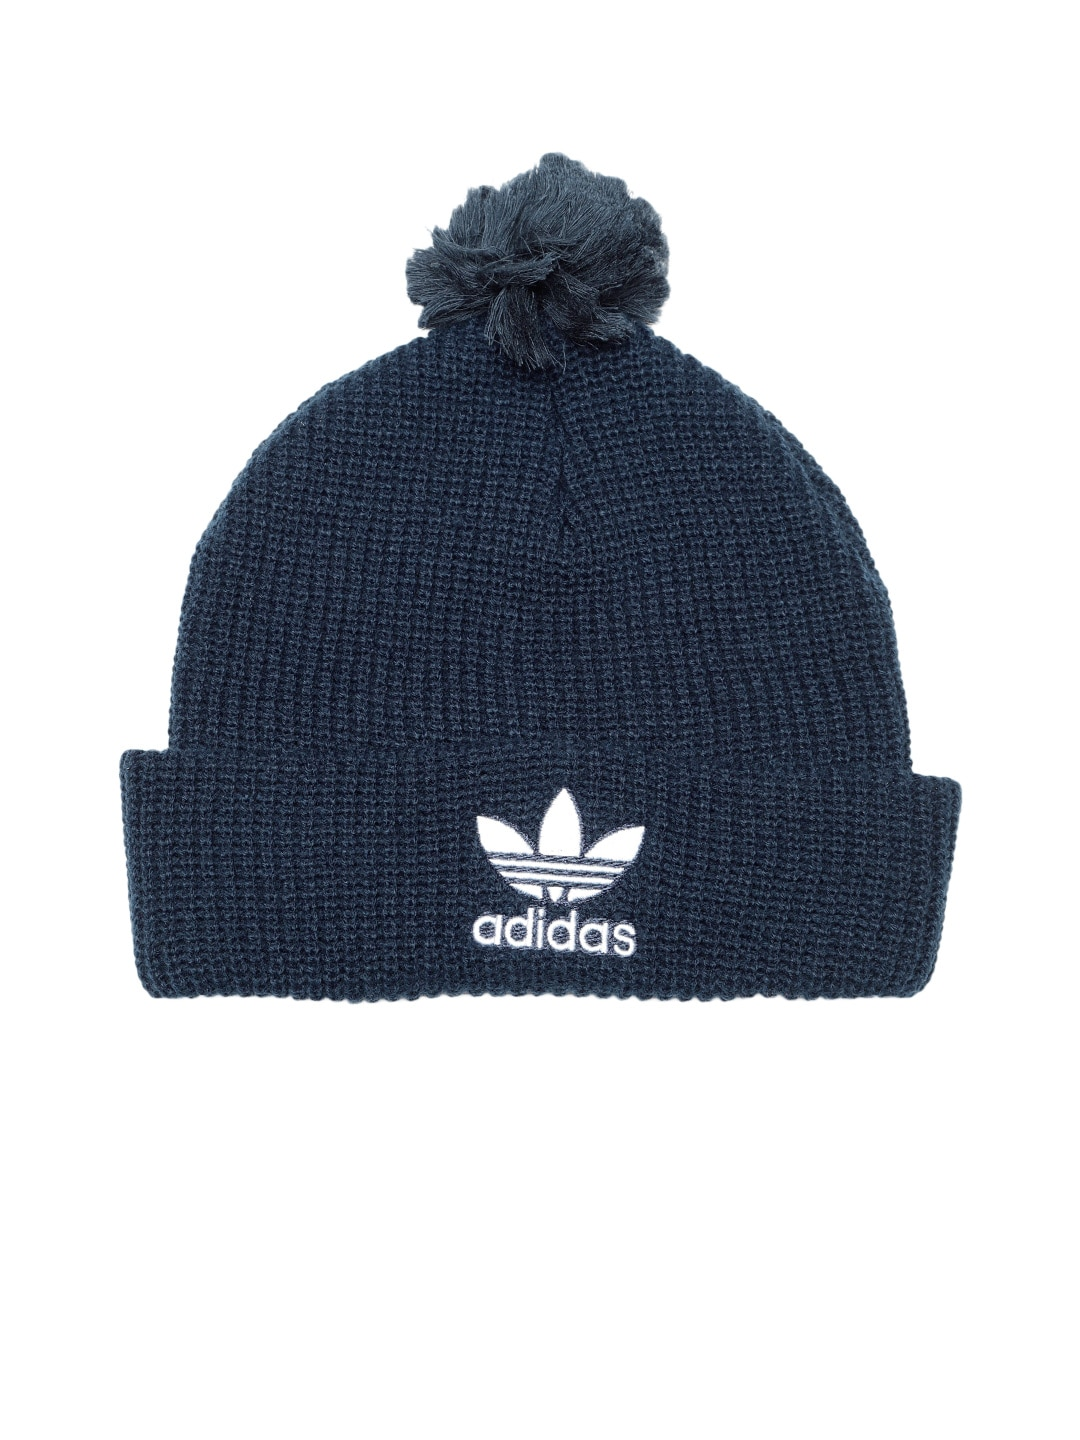 a8c72ba2748 Adidas Liverpool Backpack Hat Caps - Buy Adidas Liverpool Backpack Hat Caps  online in India